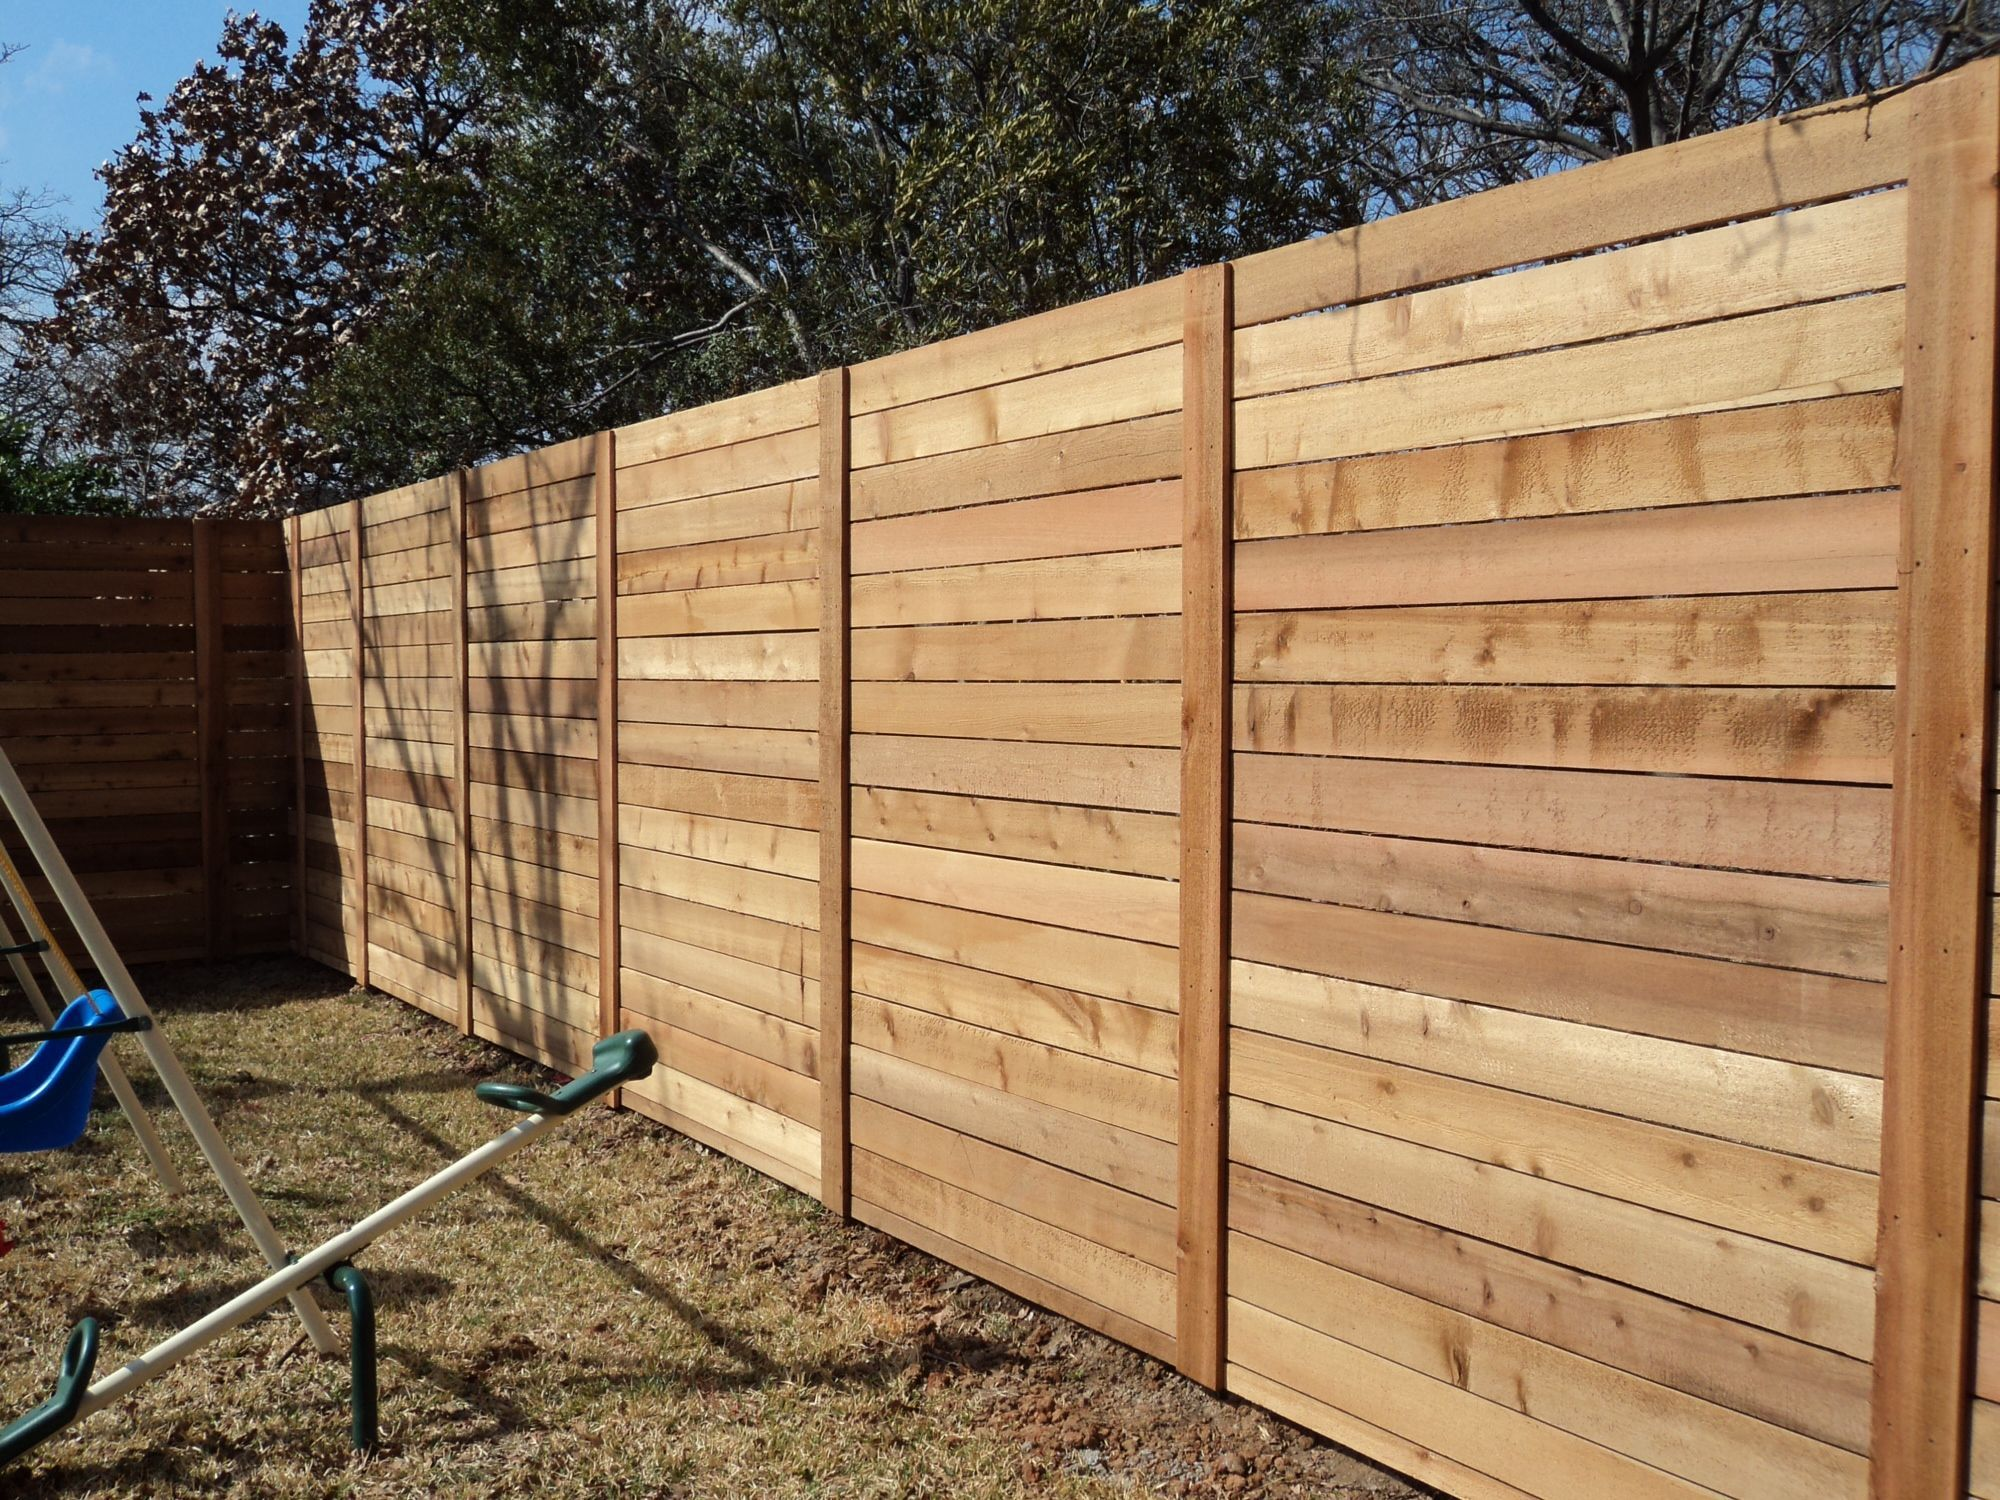 Improve Your Garden S Look With A Horizontal Fence Wood Fence Design Backyard Fences Fence Design